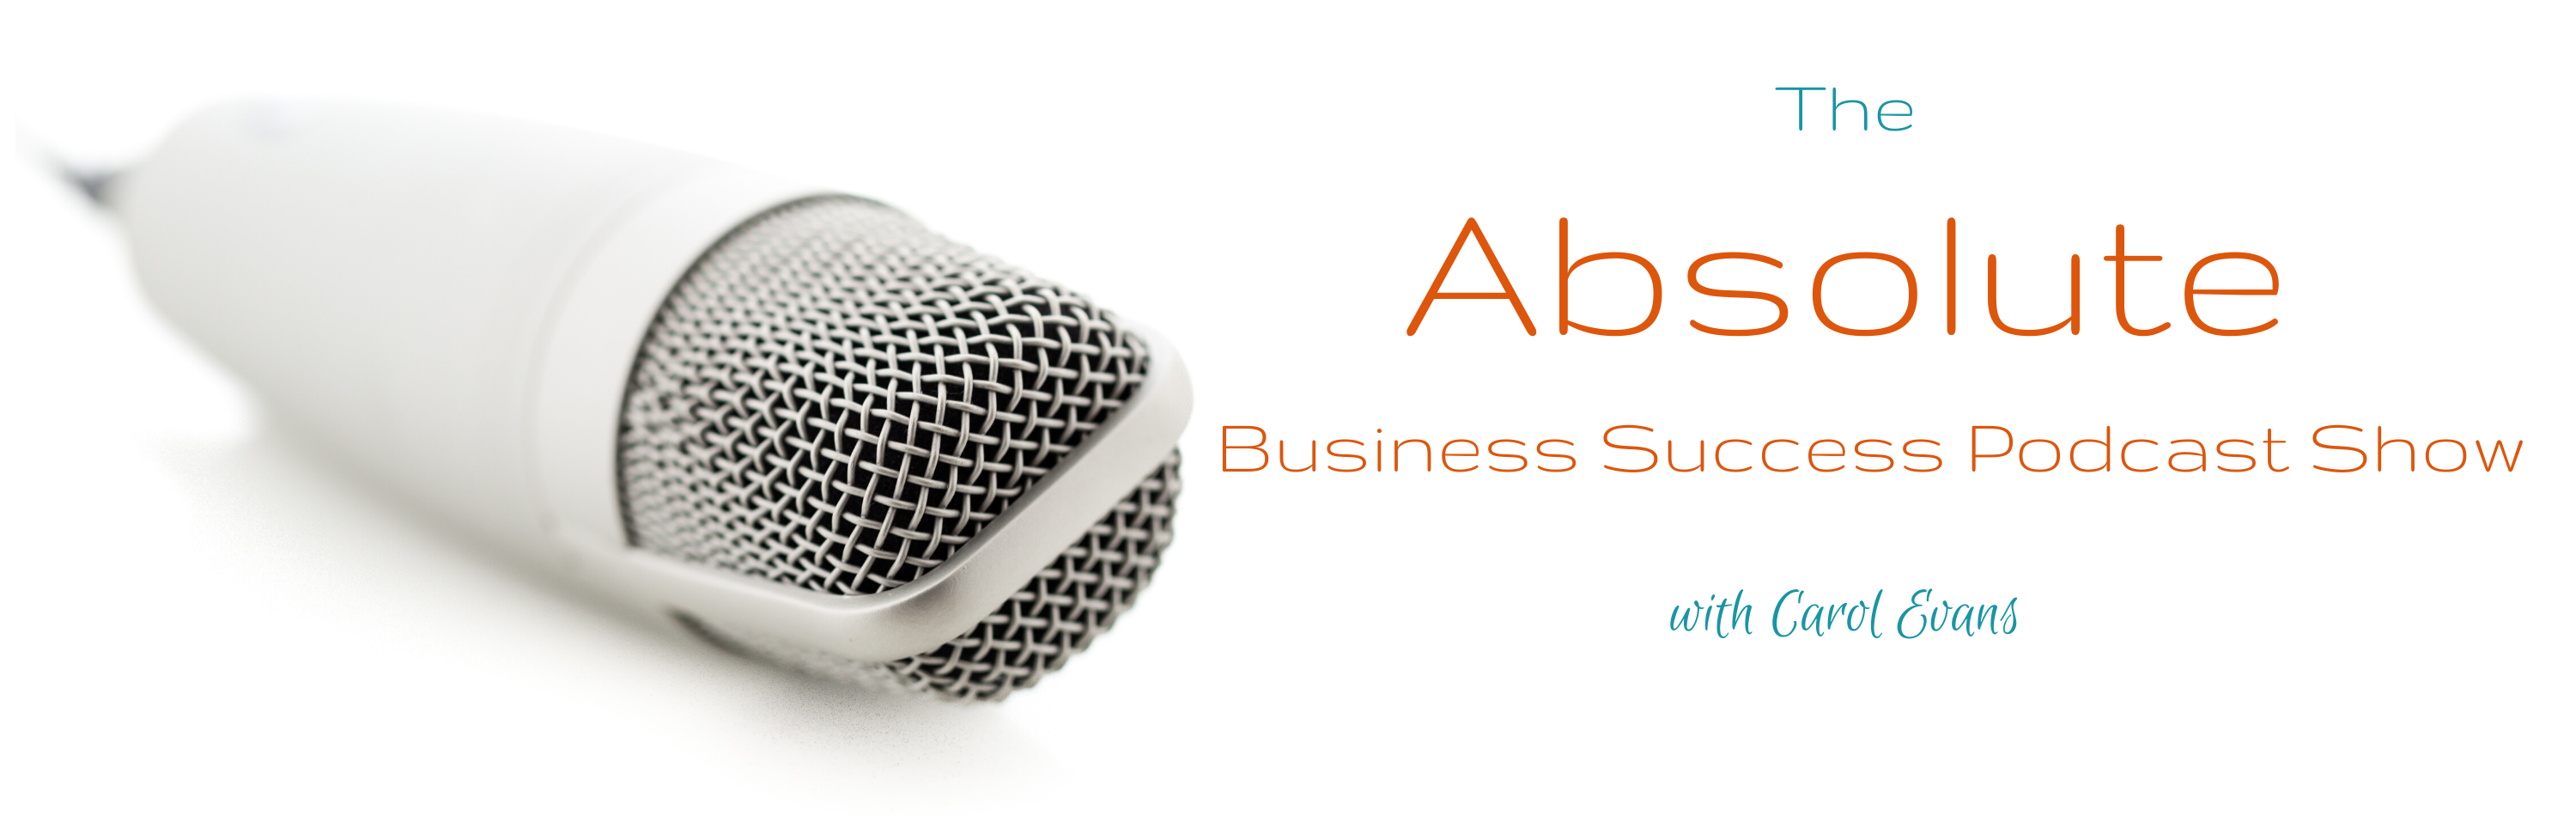 The Absolute Business Success Podcast Show with Carol Evans, Consultancy and Coaching